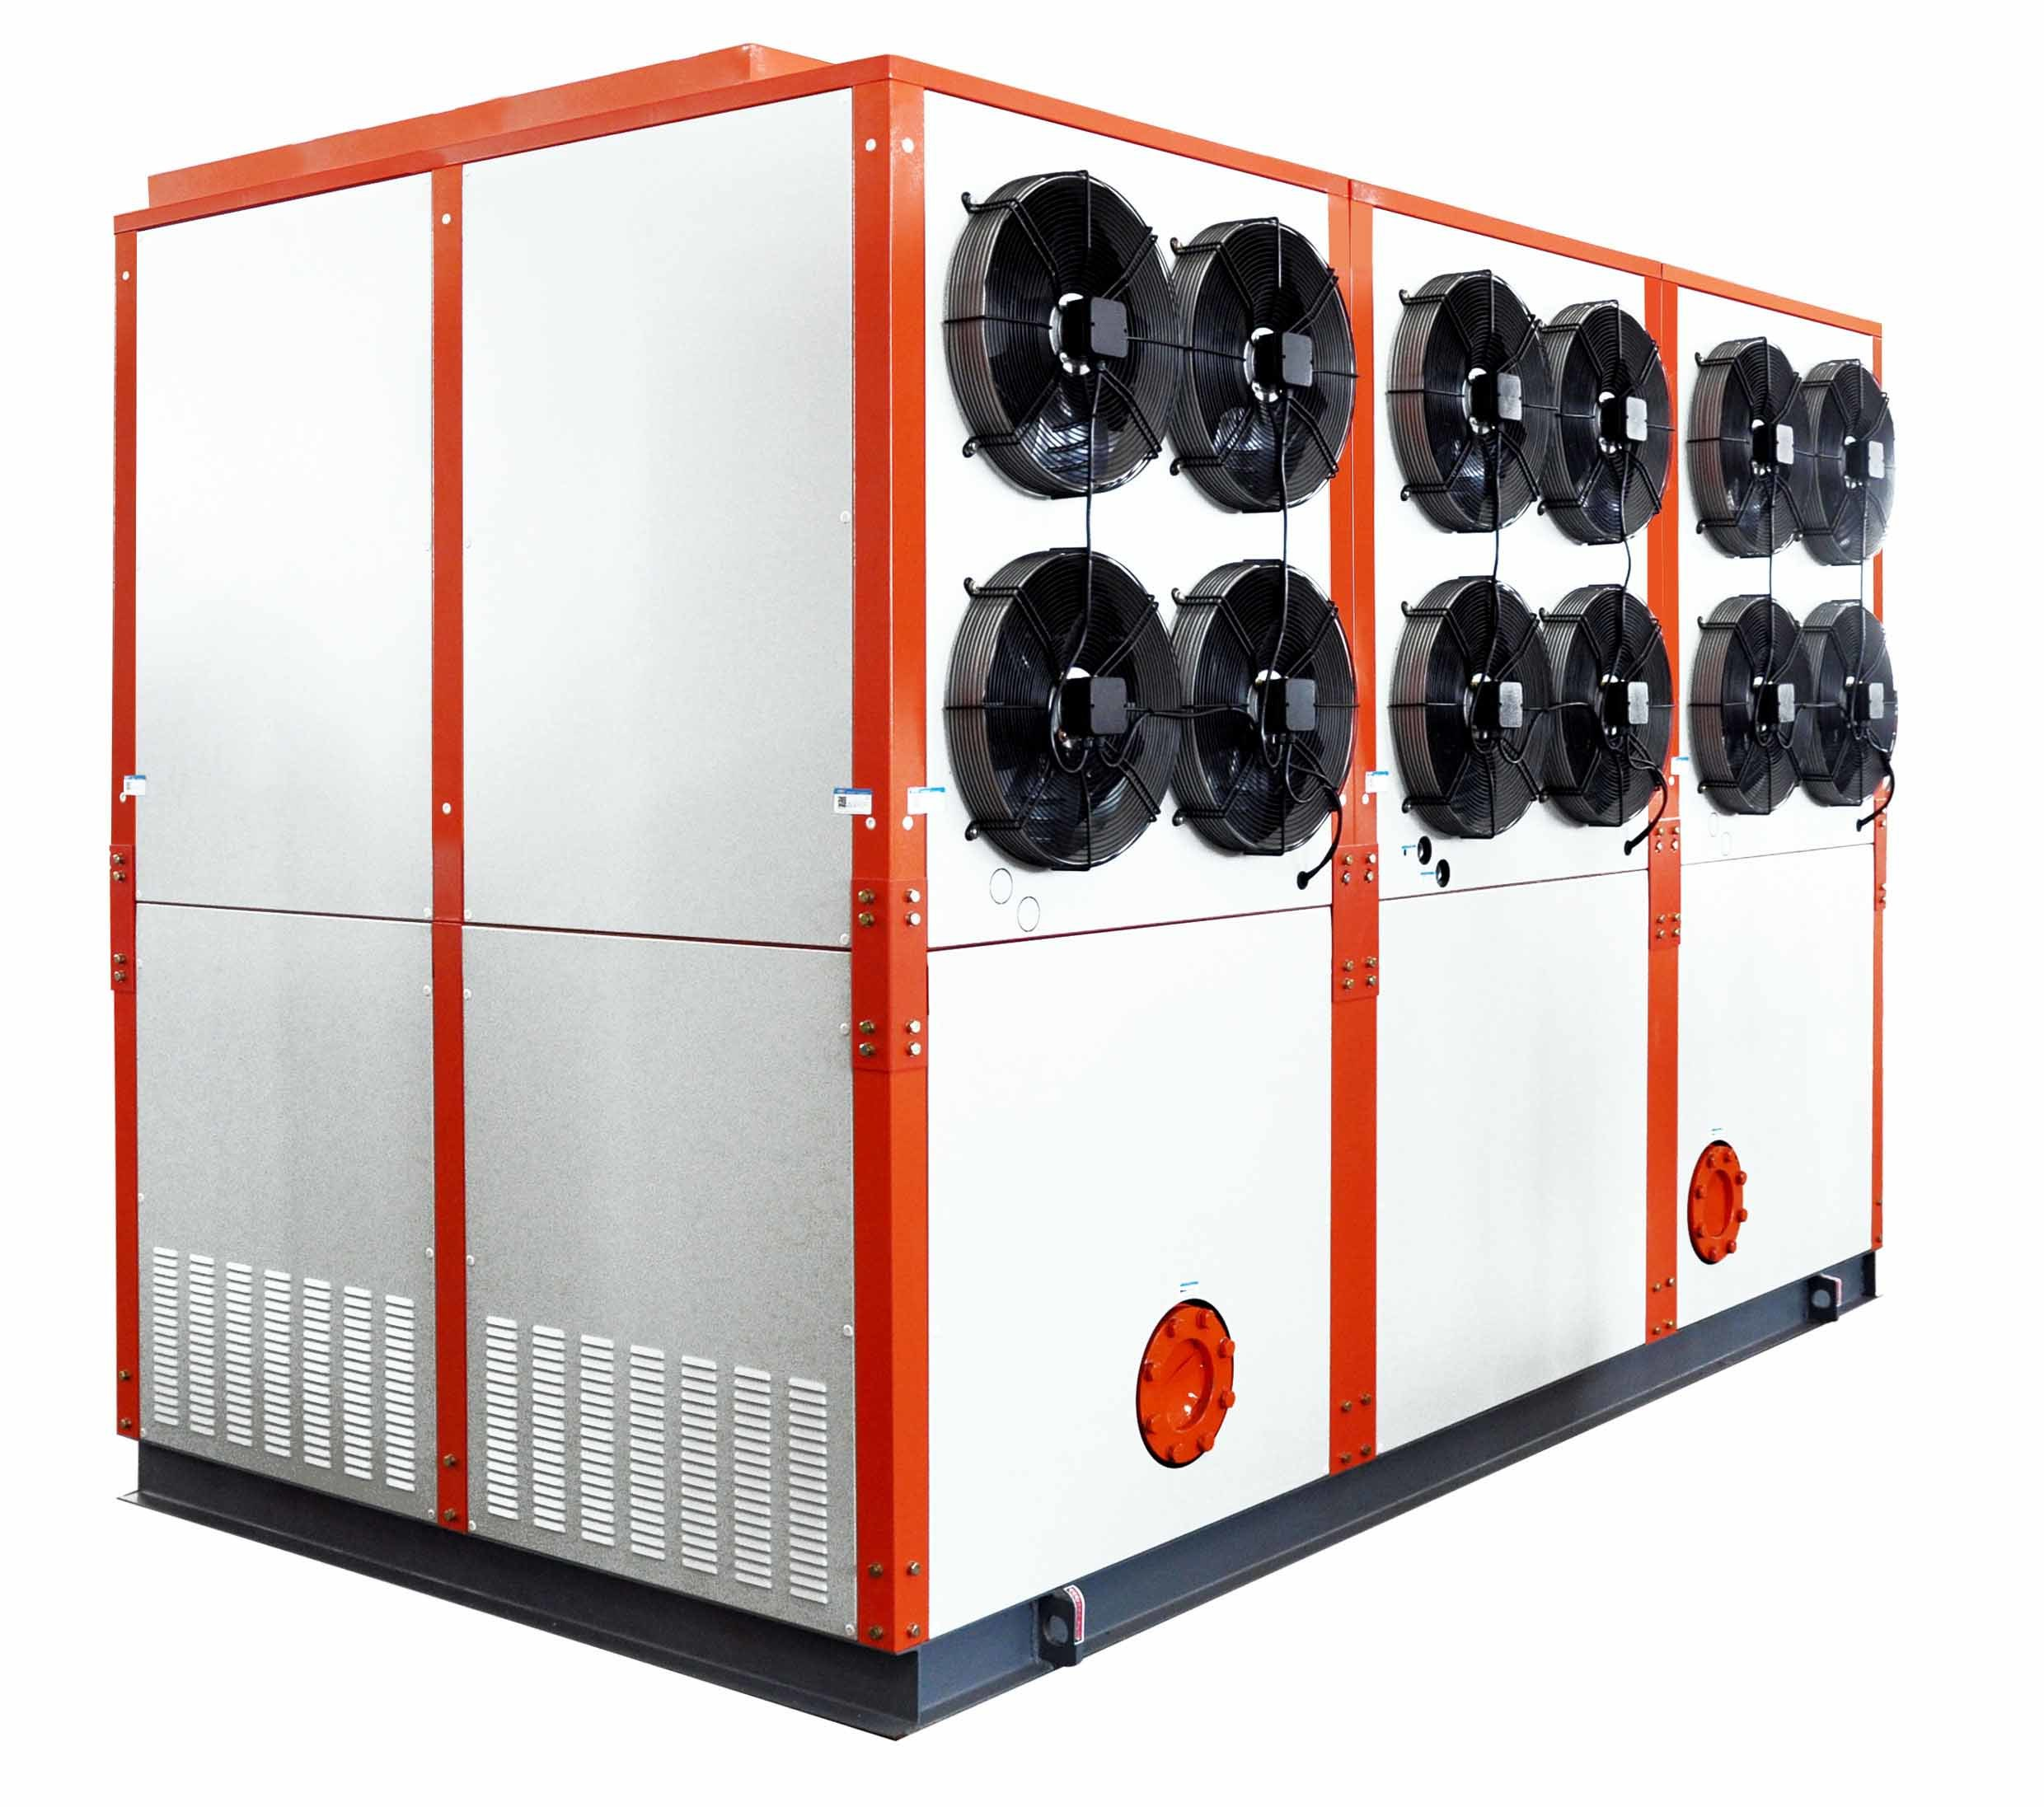 R22 Industrial Customized High Efficiency Energy Saving Intergrated Evaporative Cooled Water Chiller System with Flooded Evaporator